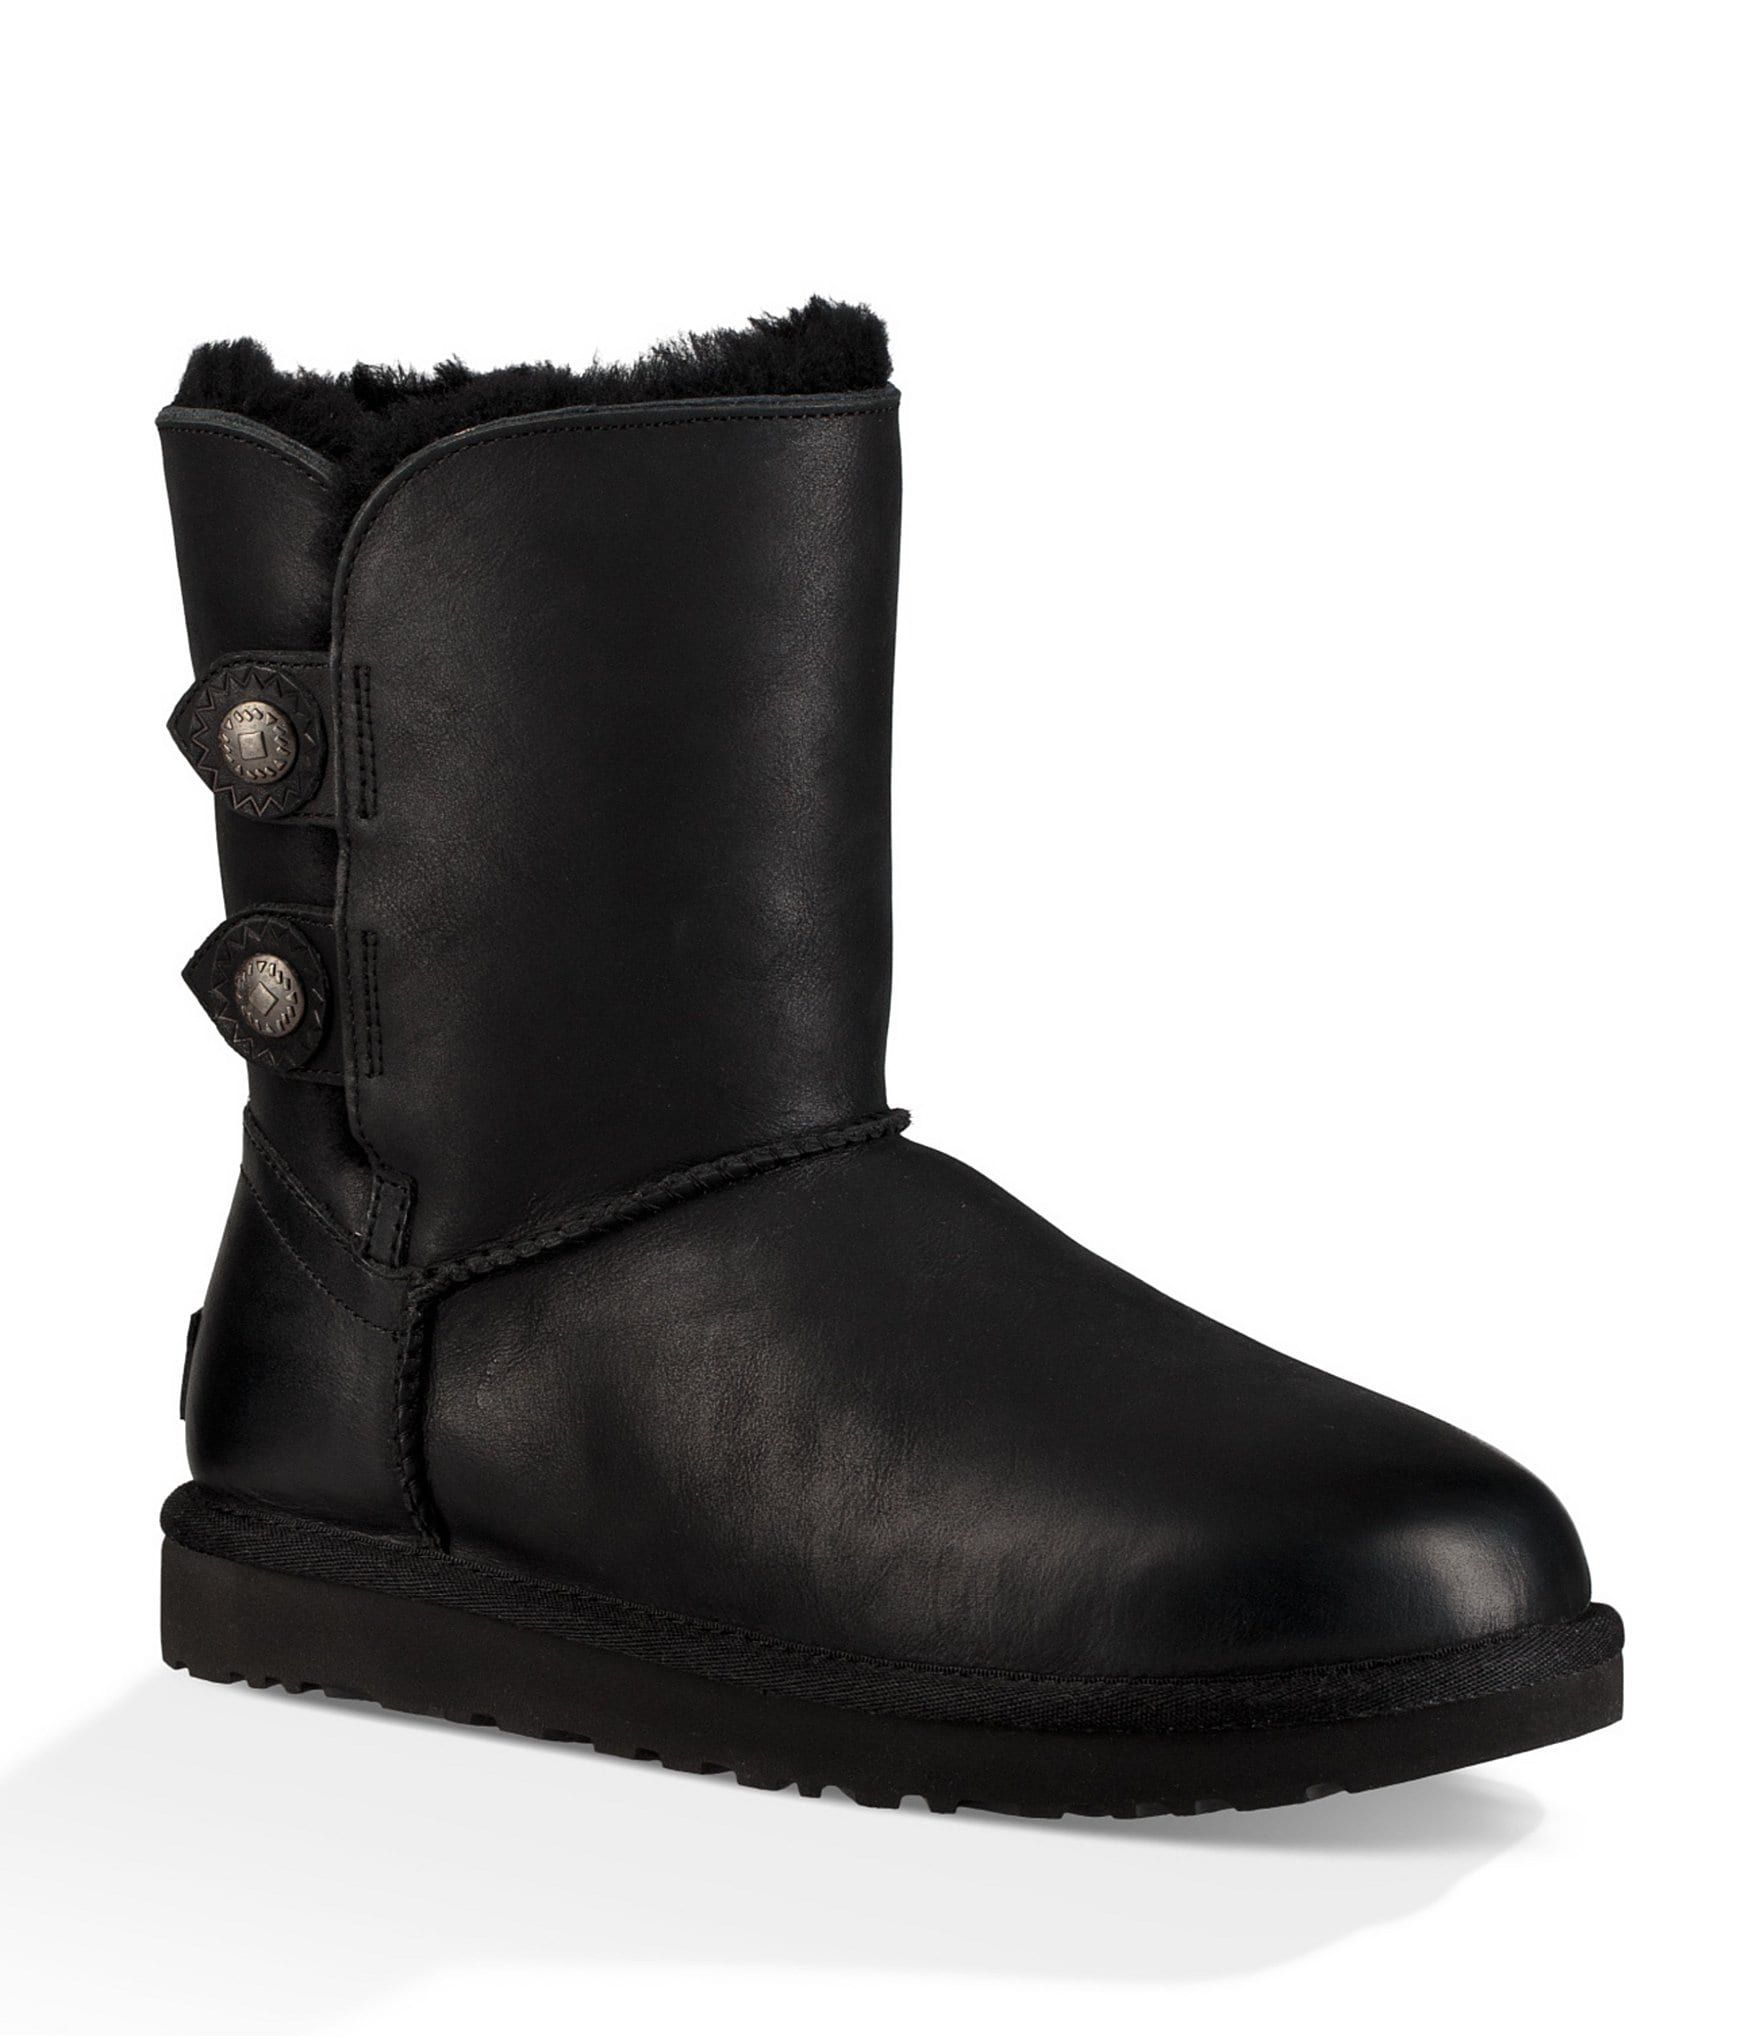 uggs on sale black friday 2017 date dillards ugg boots for women on sale